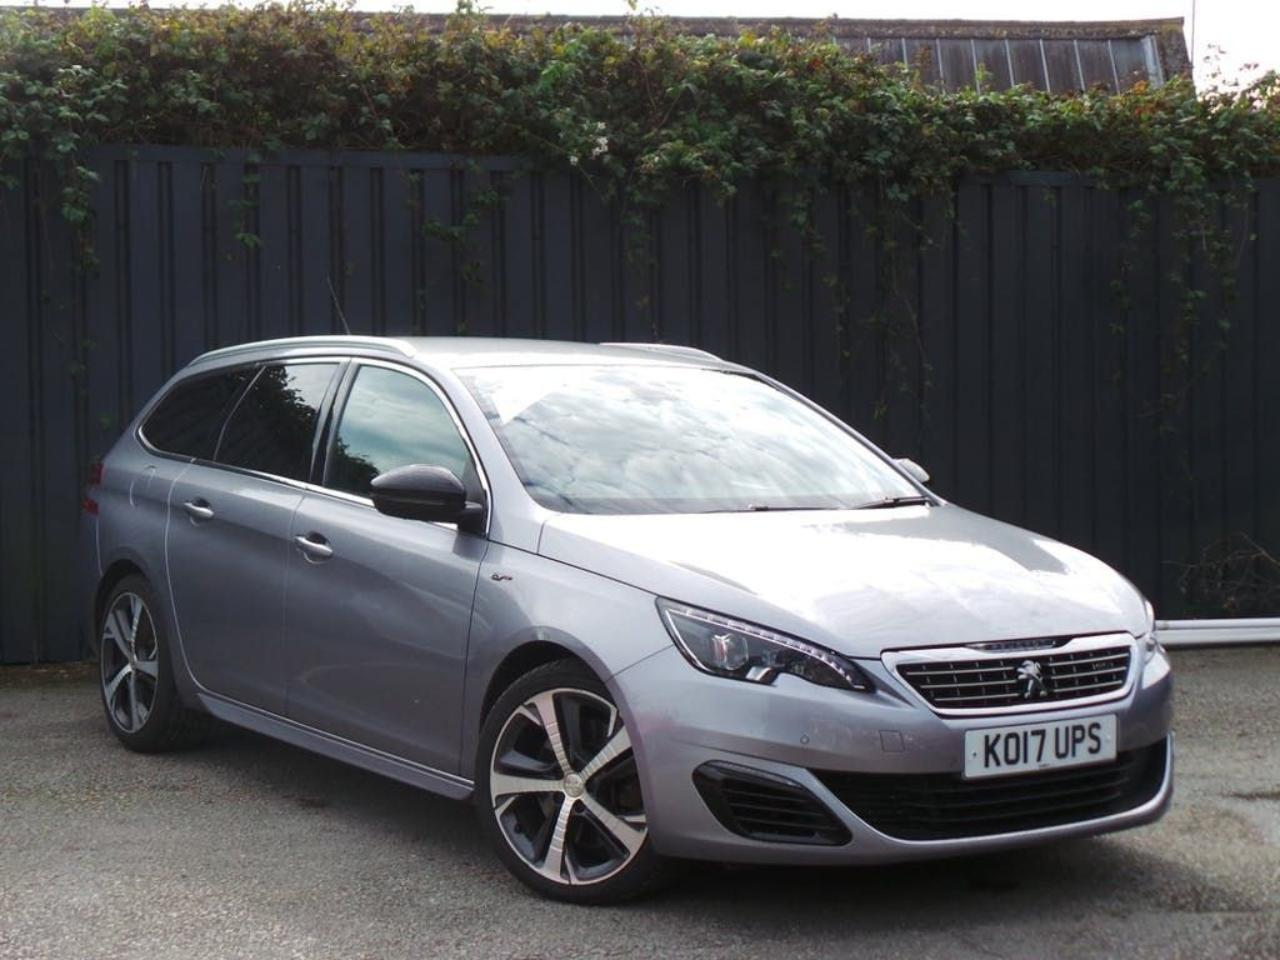 Peugeot 308 SW 2.0 BLUEHDI 180PS GT 5DR EAT6 AUTO